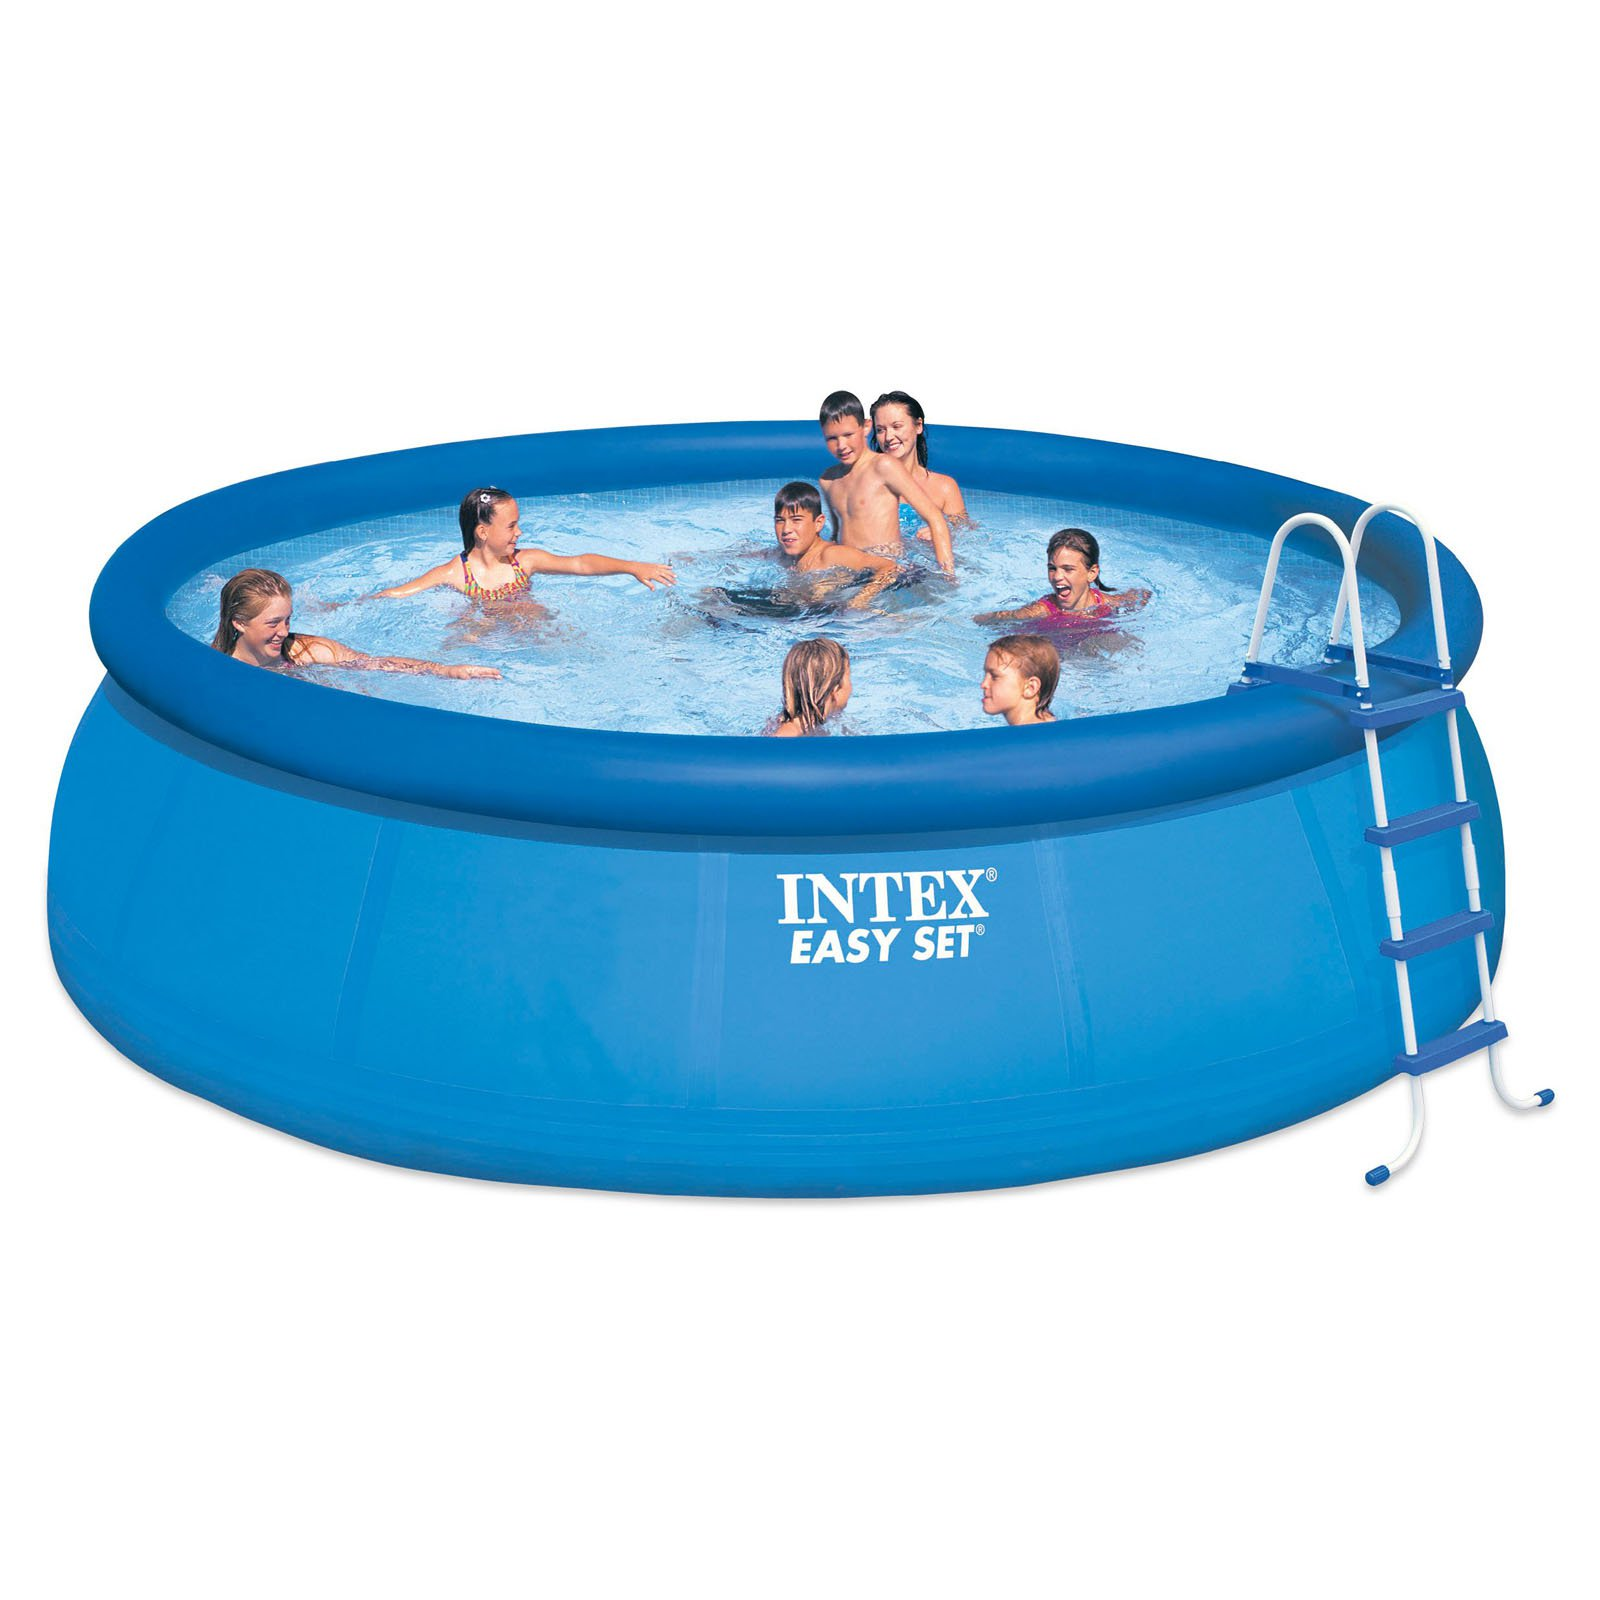 Intex 15 ft. x 48 in. Easy Set Swimming Pool with 1,000 GPH Filter Pump